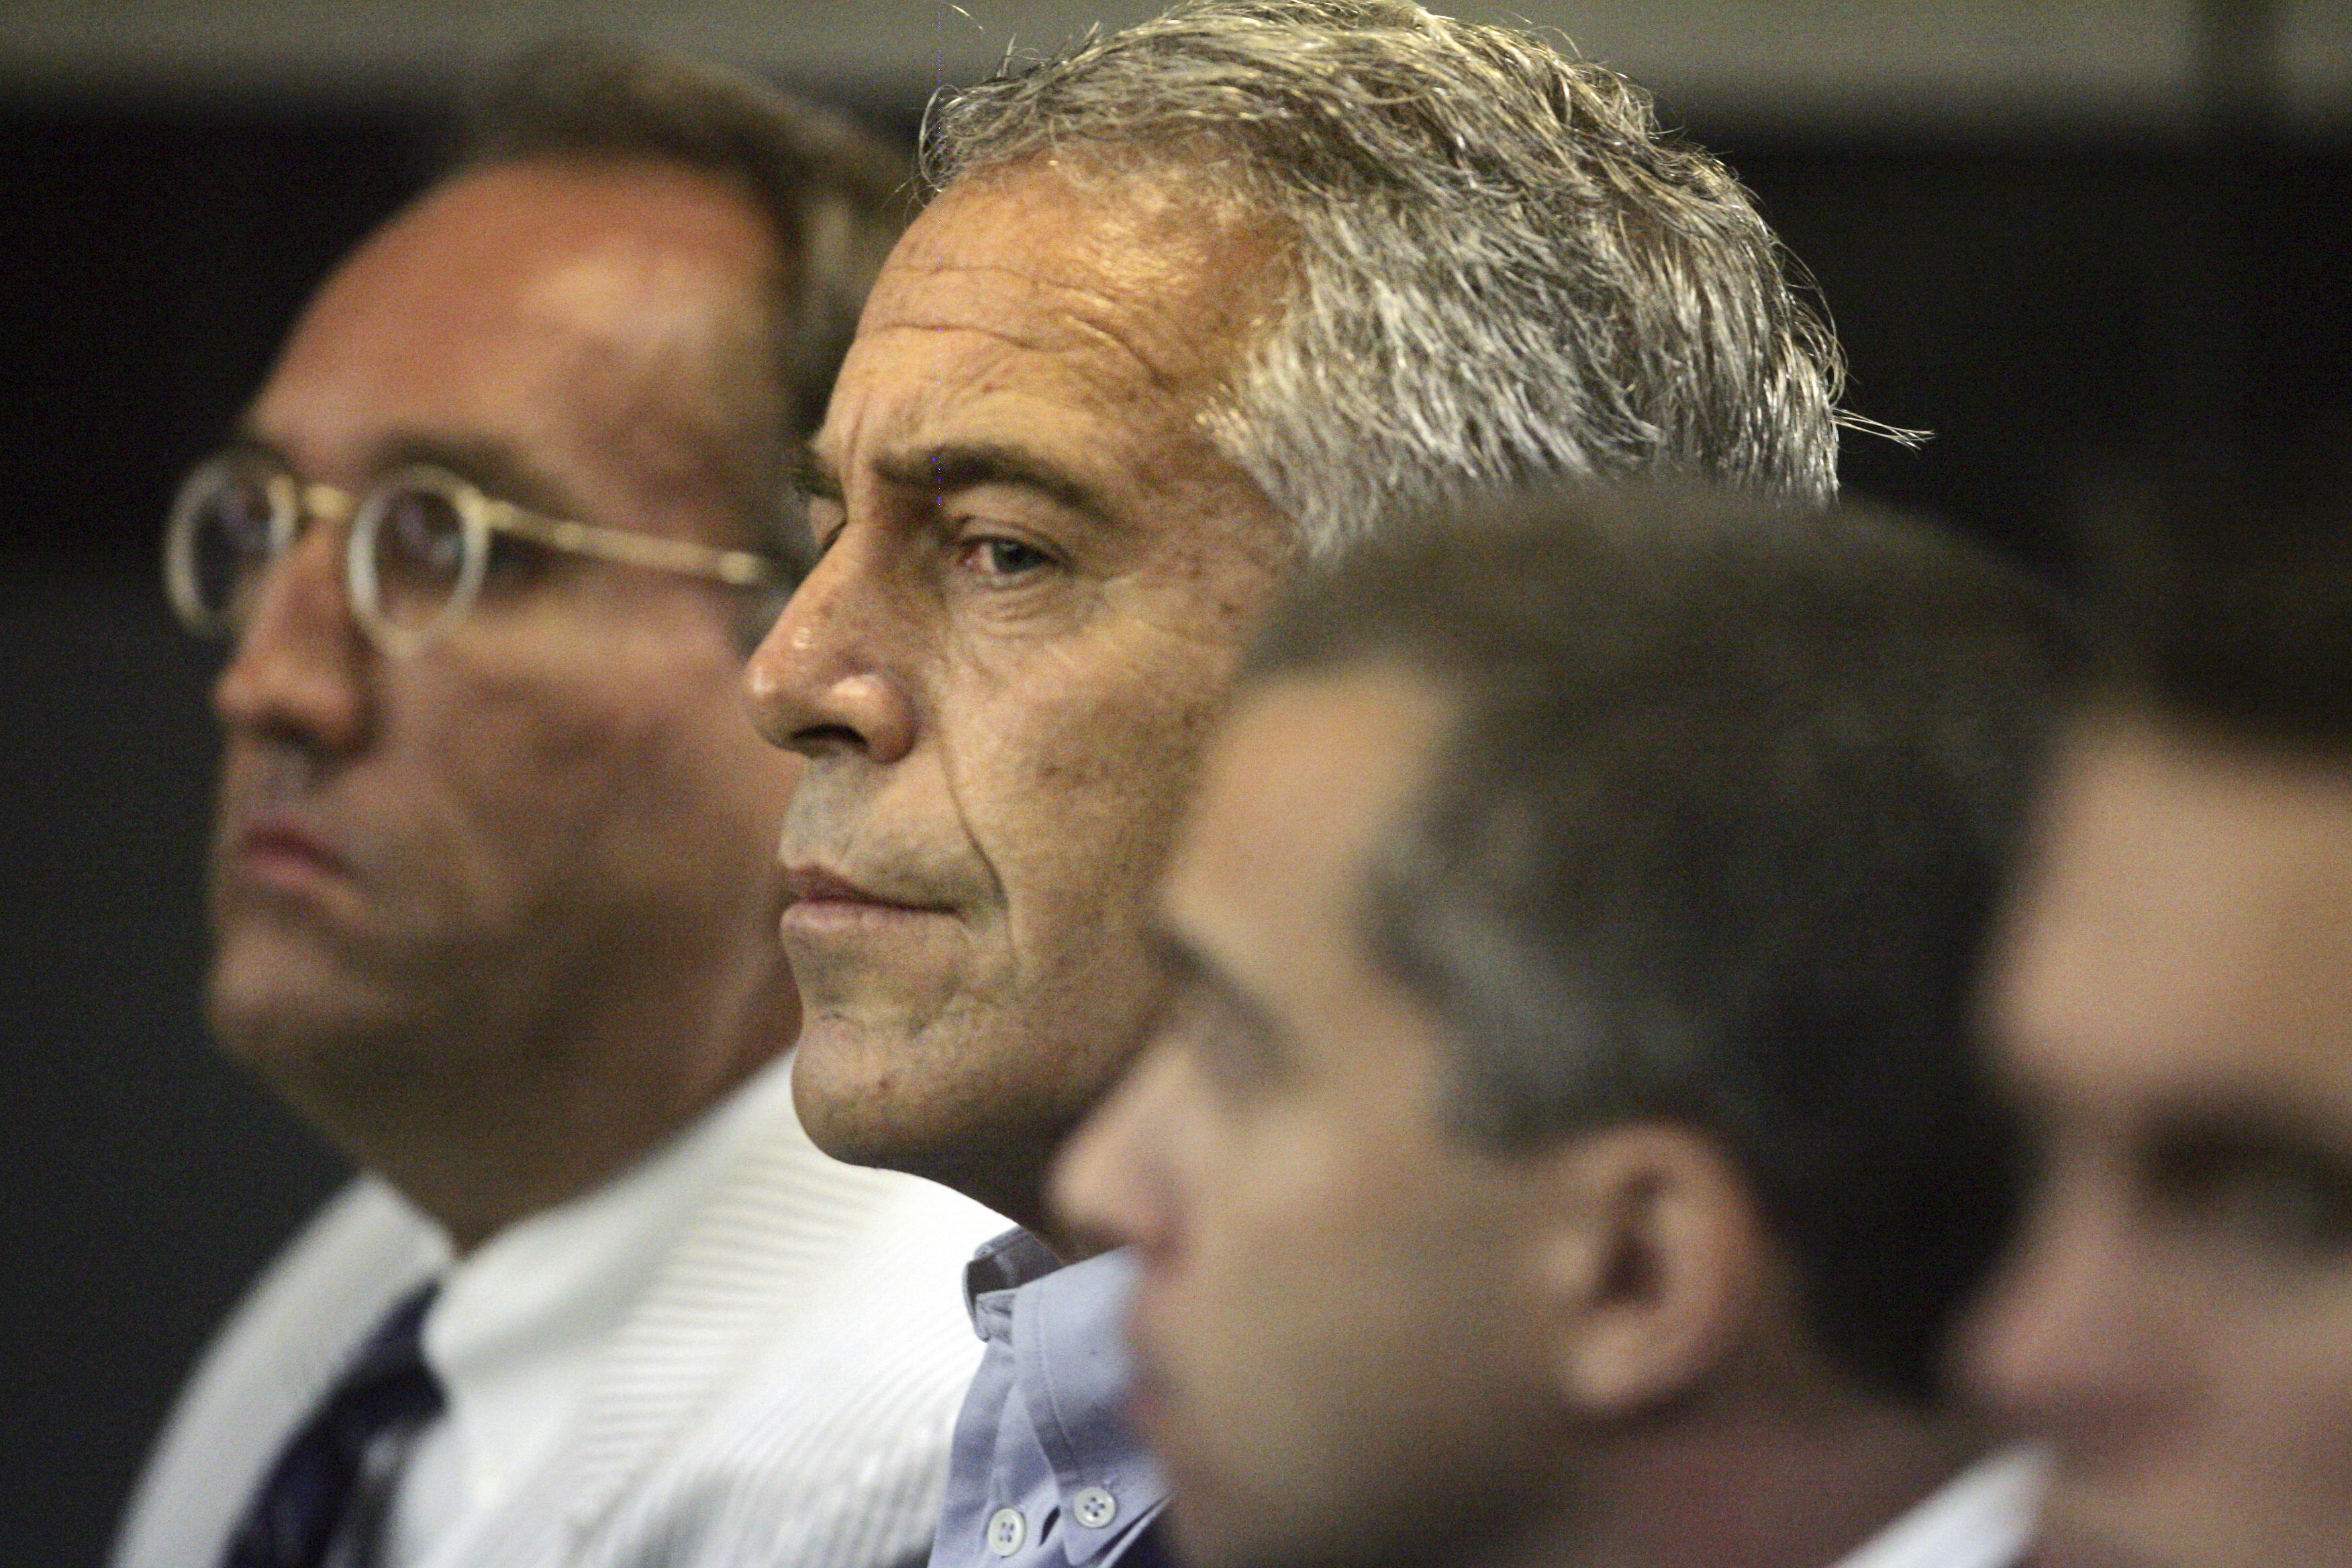 FILE- In this July 30, 2008 file photo, Jeffrey Epstein appears in court in West Palm Beach, Fla. Epstein has died by suicide while awaiting trial on sex-trafficking charges, says person briefed on the matter, Saturday, Aug. 10, 2019. (AP Photo/Palm Beach